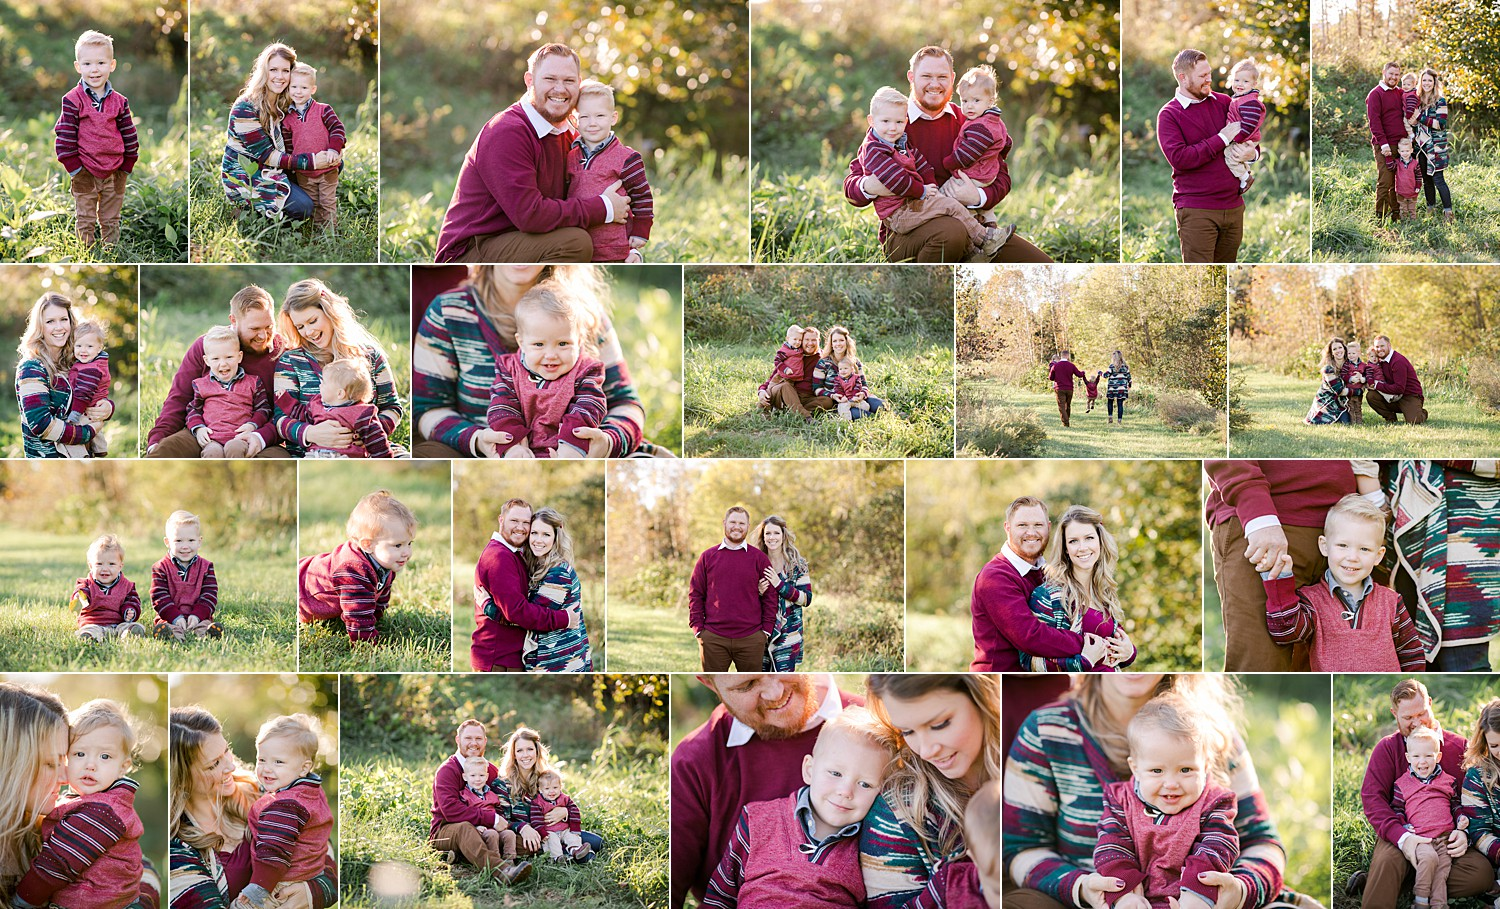 lychburg-virginia-family-pictures-fall-2019-0006.jpg